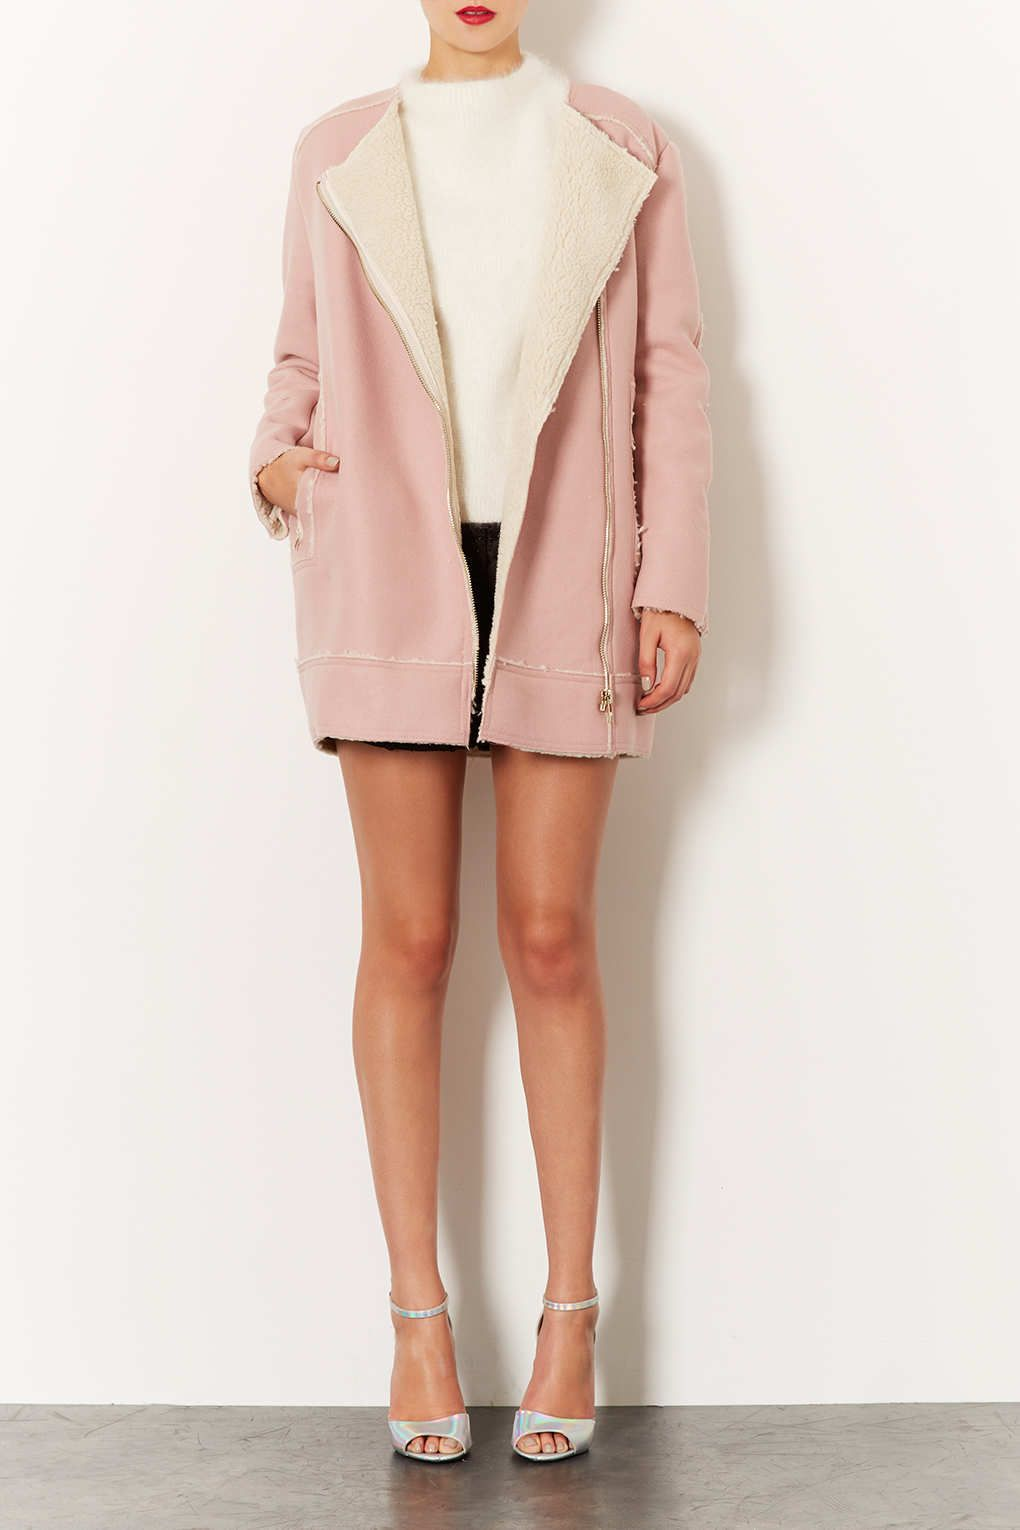 Premium Wool Lined Biker Coat - Jackets & Coats - Clothing - Topshop